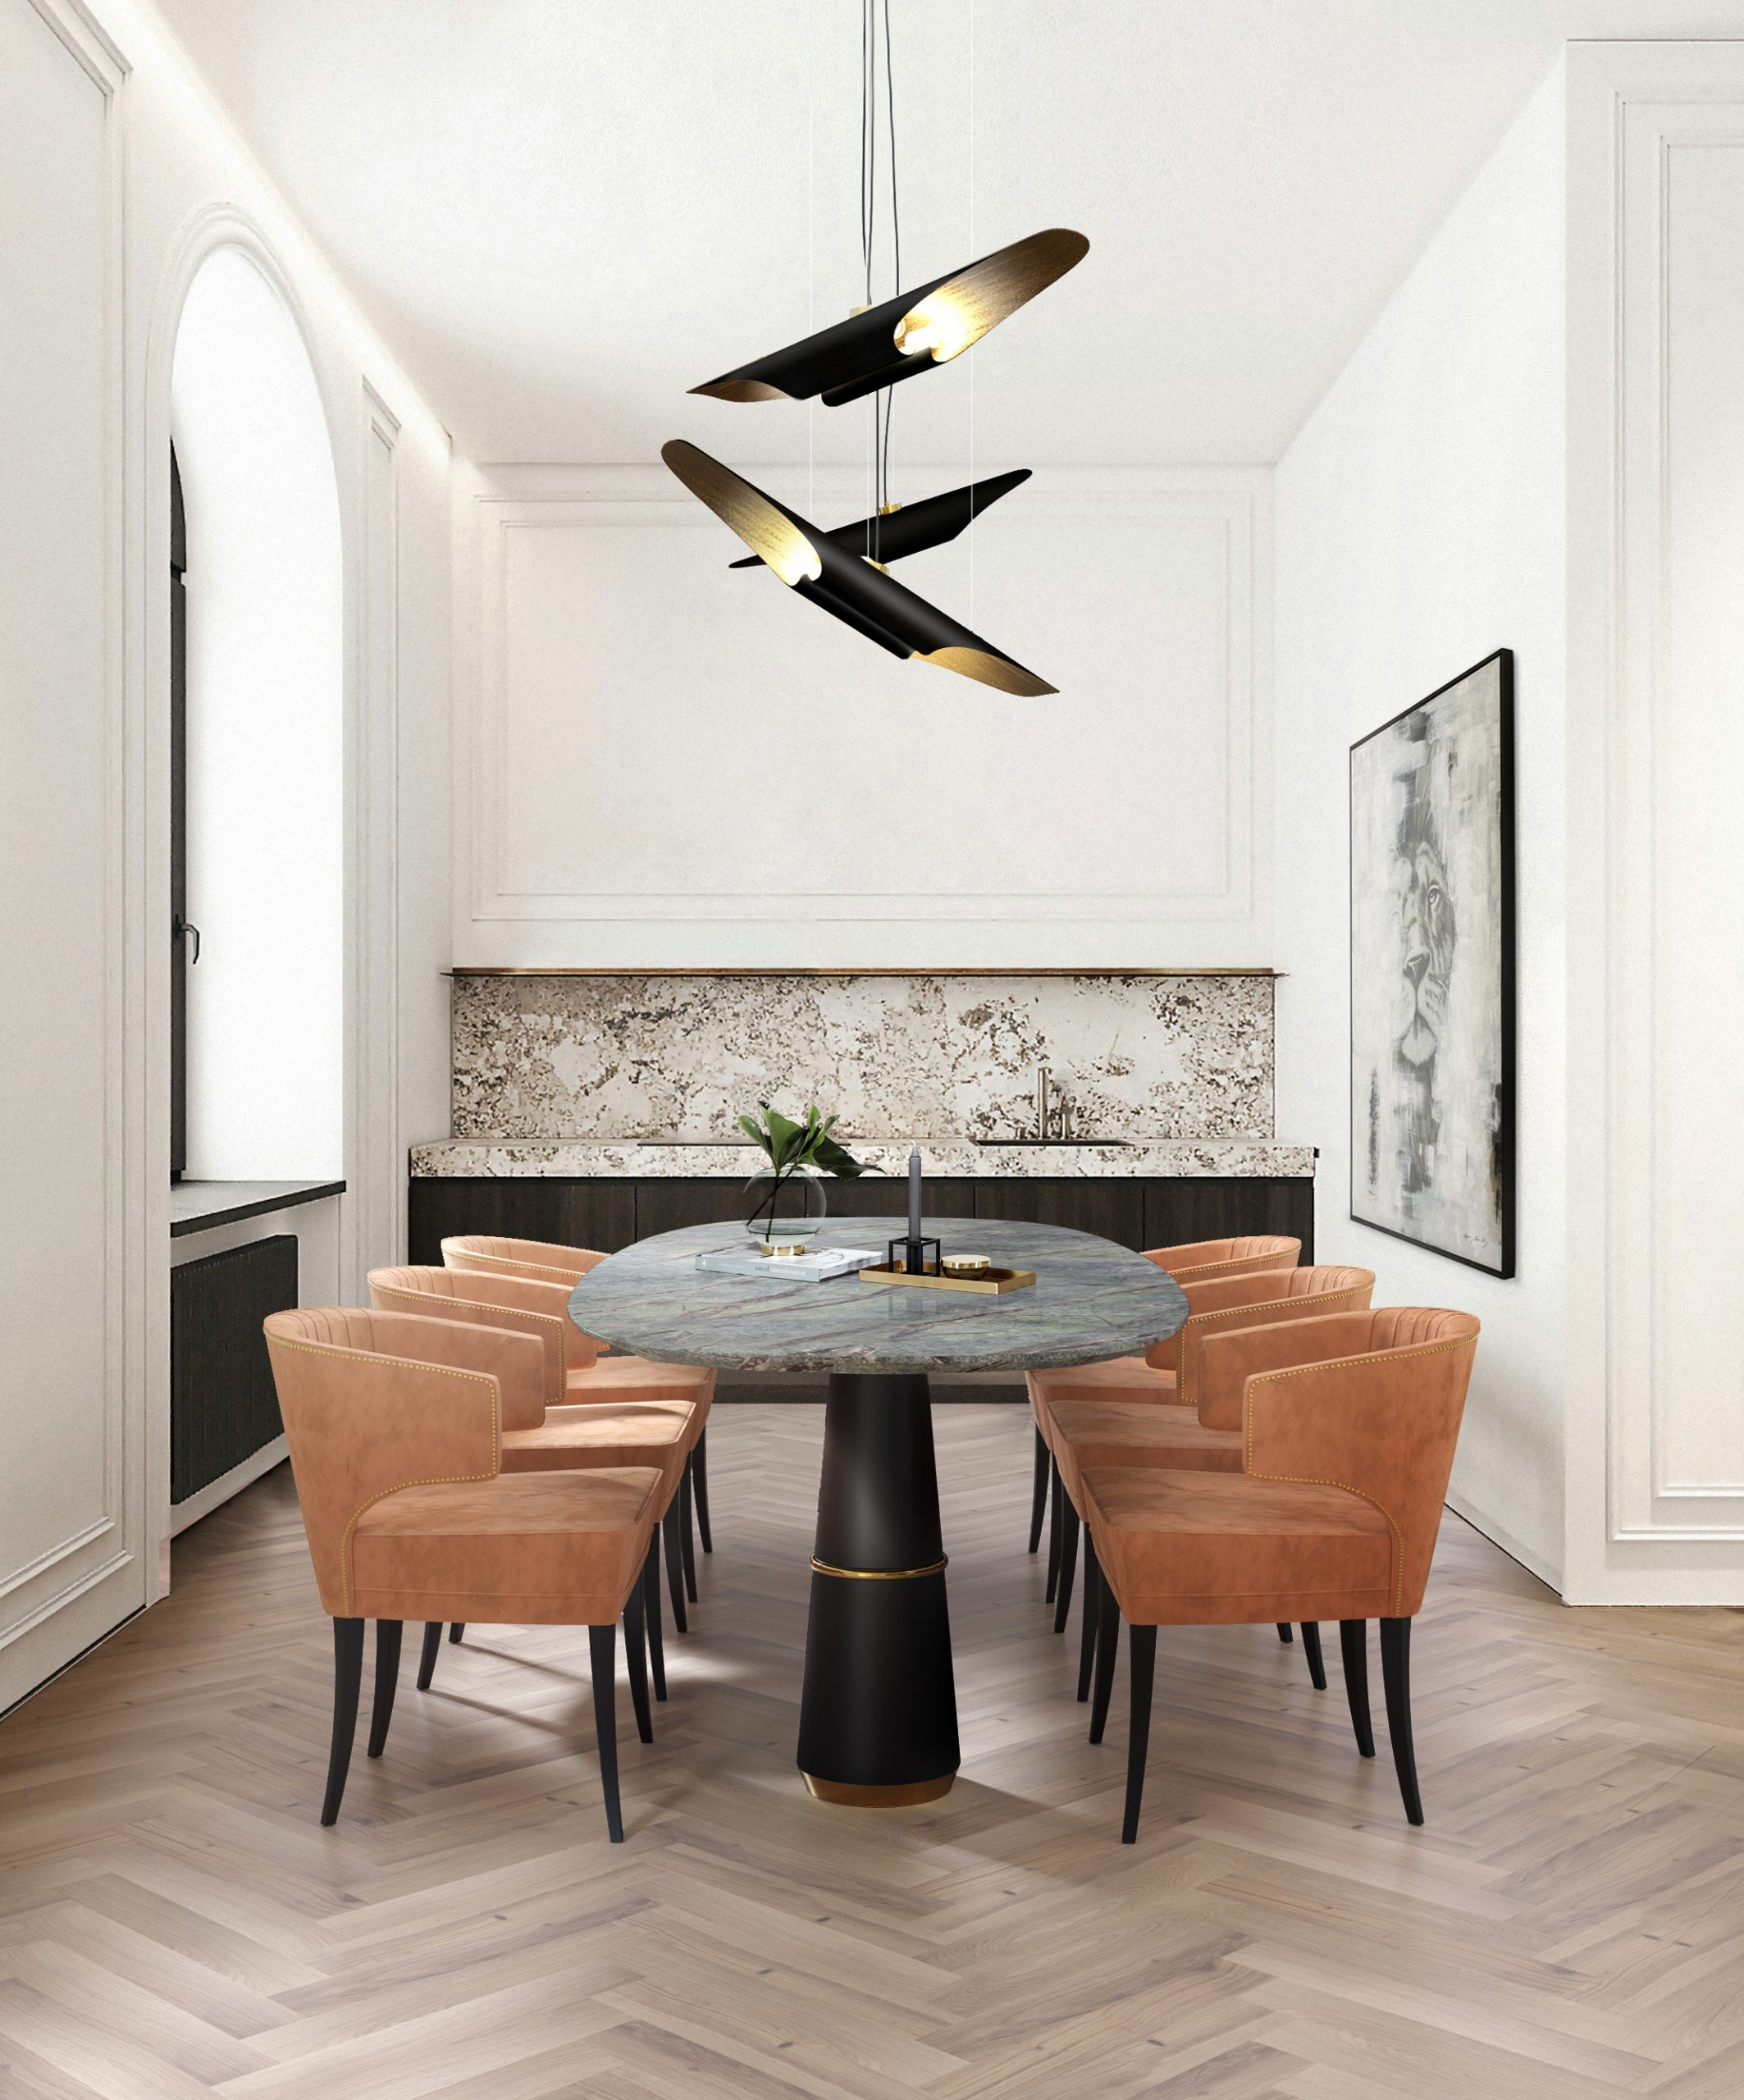 These Are the Parisian-Inspired Home Trends You Definitely Need To Try - This Year, if Possible! parisian These Are the Parisian-Inspired Home Trends You Definitely Need To Try – This Year, if Possible! 5 1 scaled